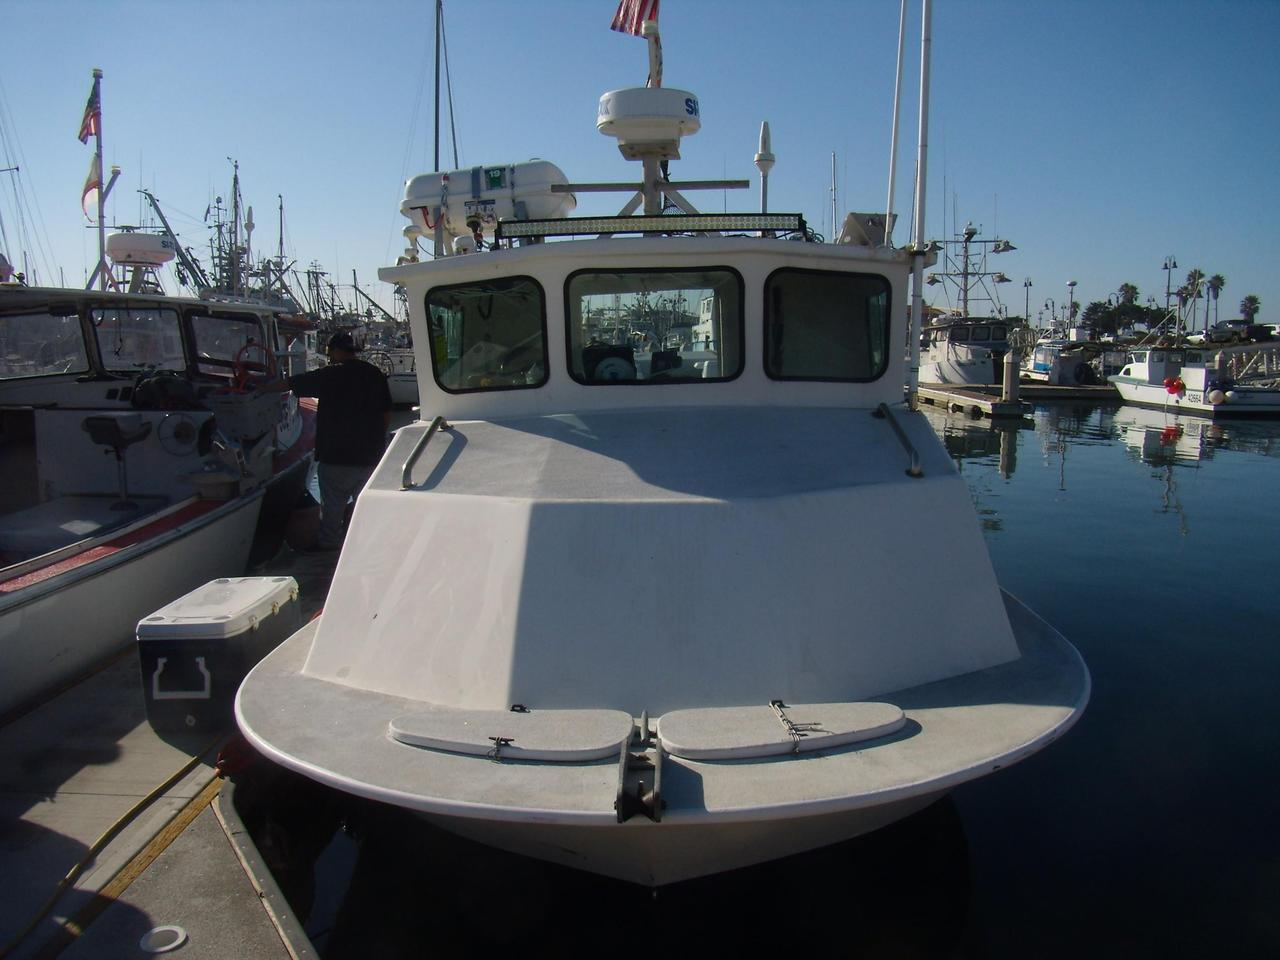 1973 Used Radon 32 Commercial Boat For Sale - $90,000